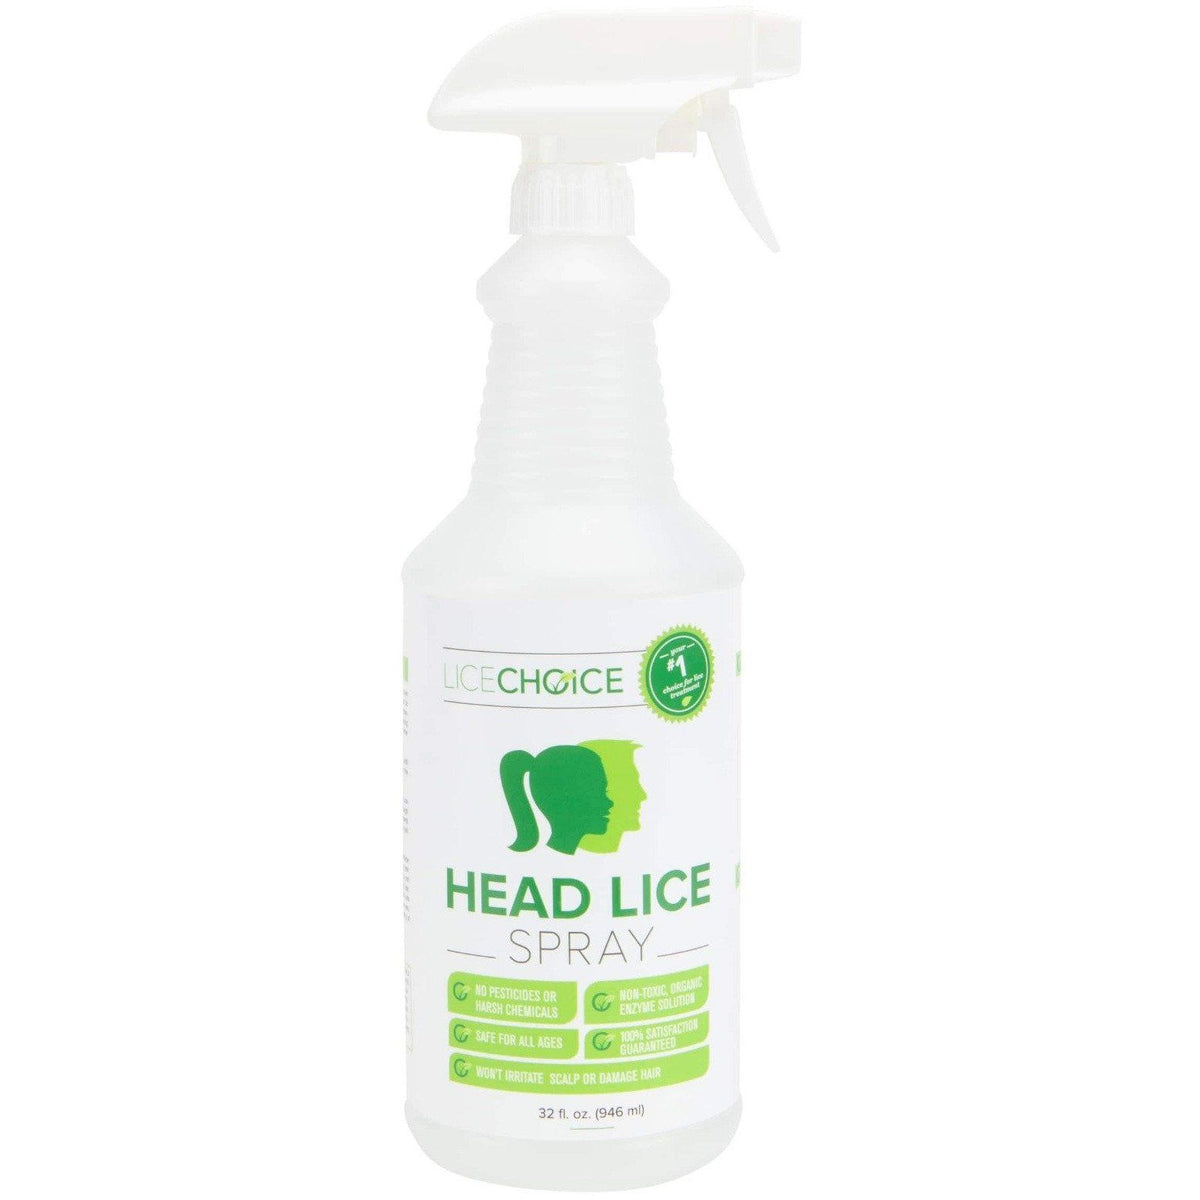 Lice Choice Head Lice Treatment Spray 32oz Bottle